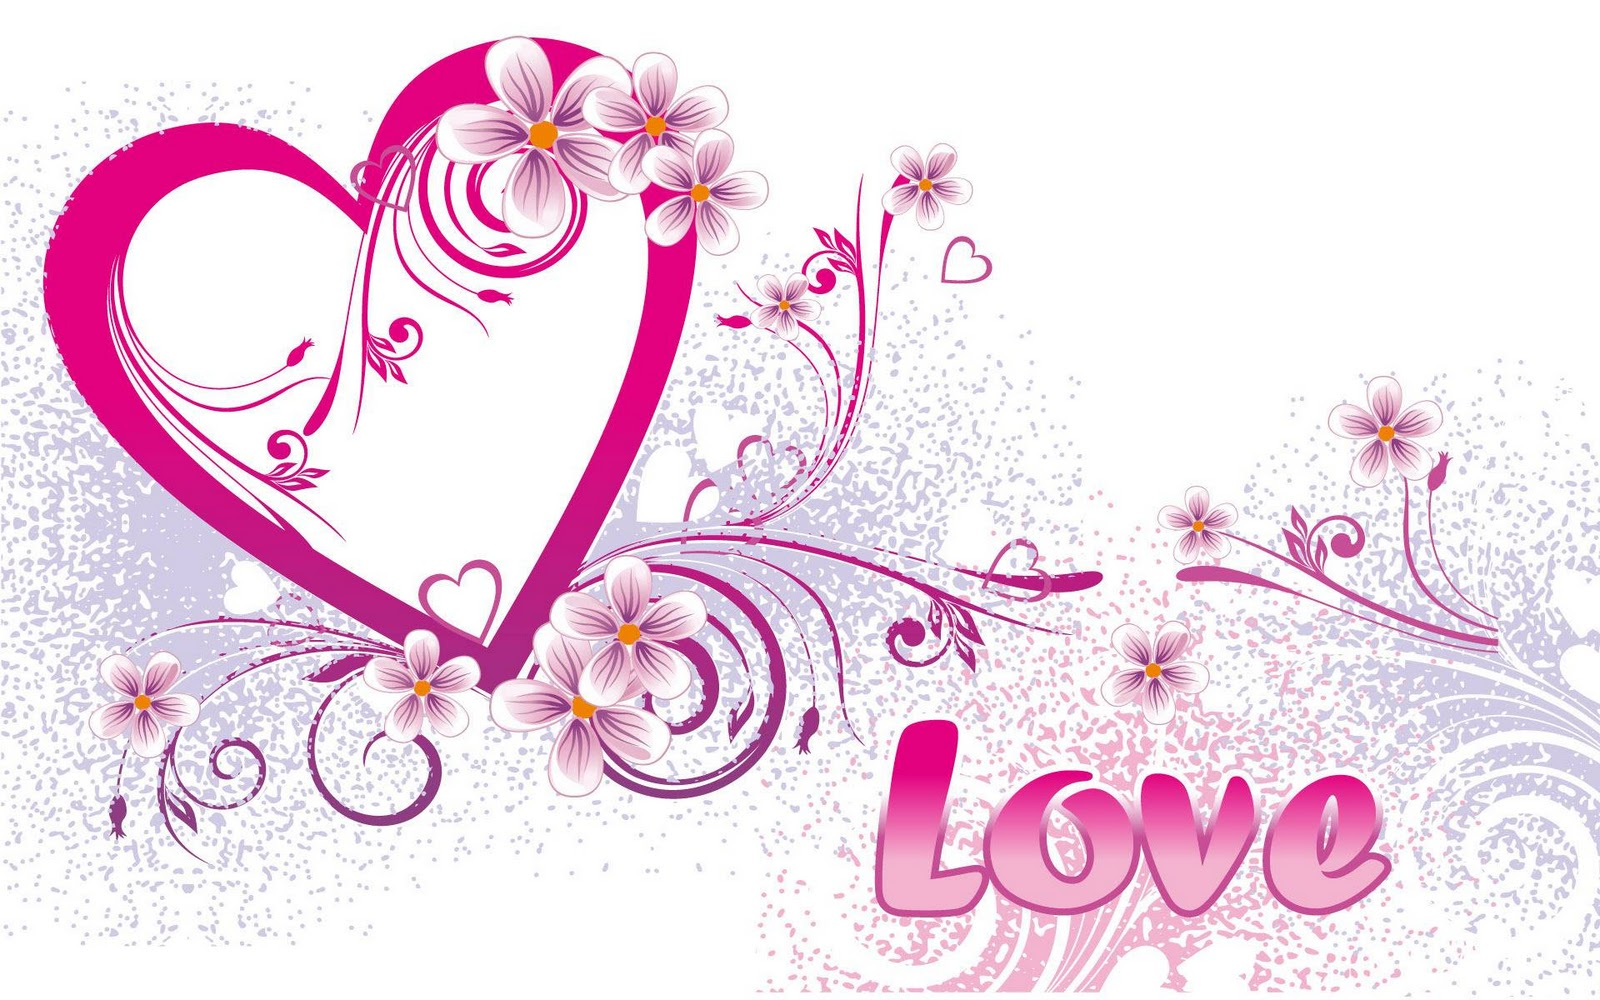 Love Wallpaper With My Name : wallpaper: S Love Name Wallpaper